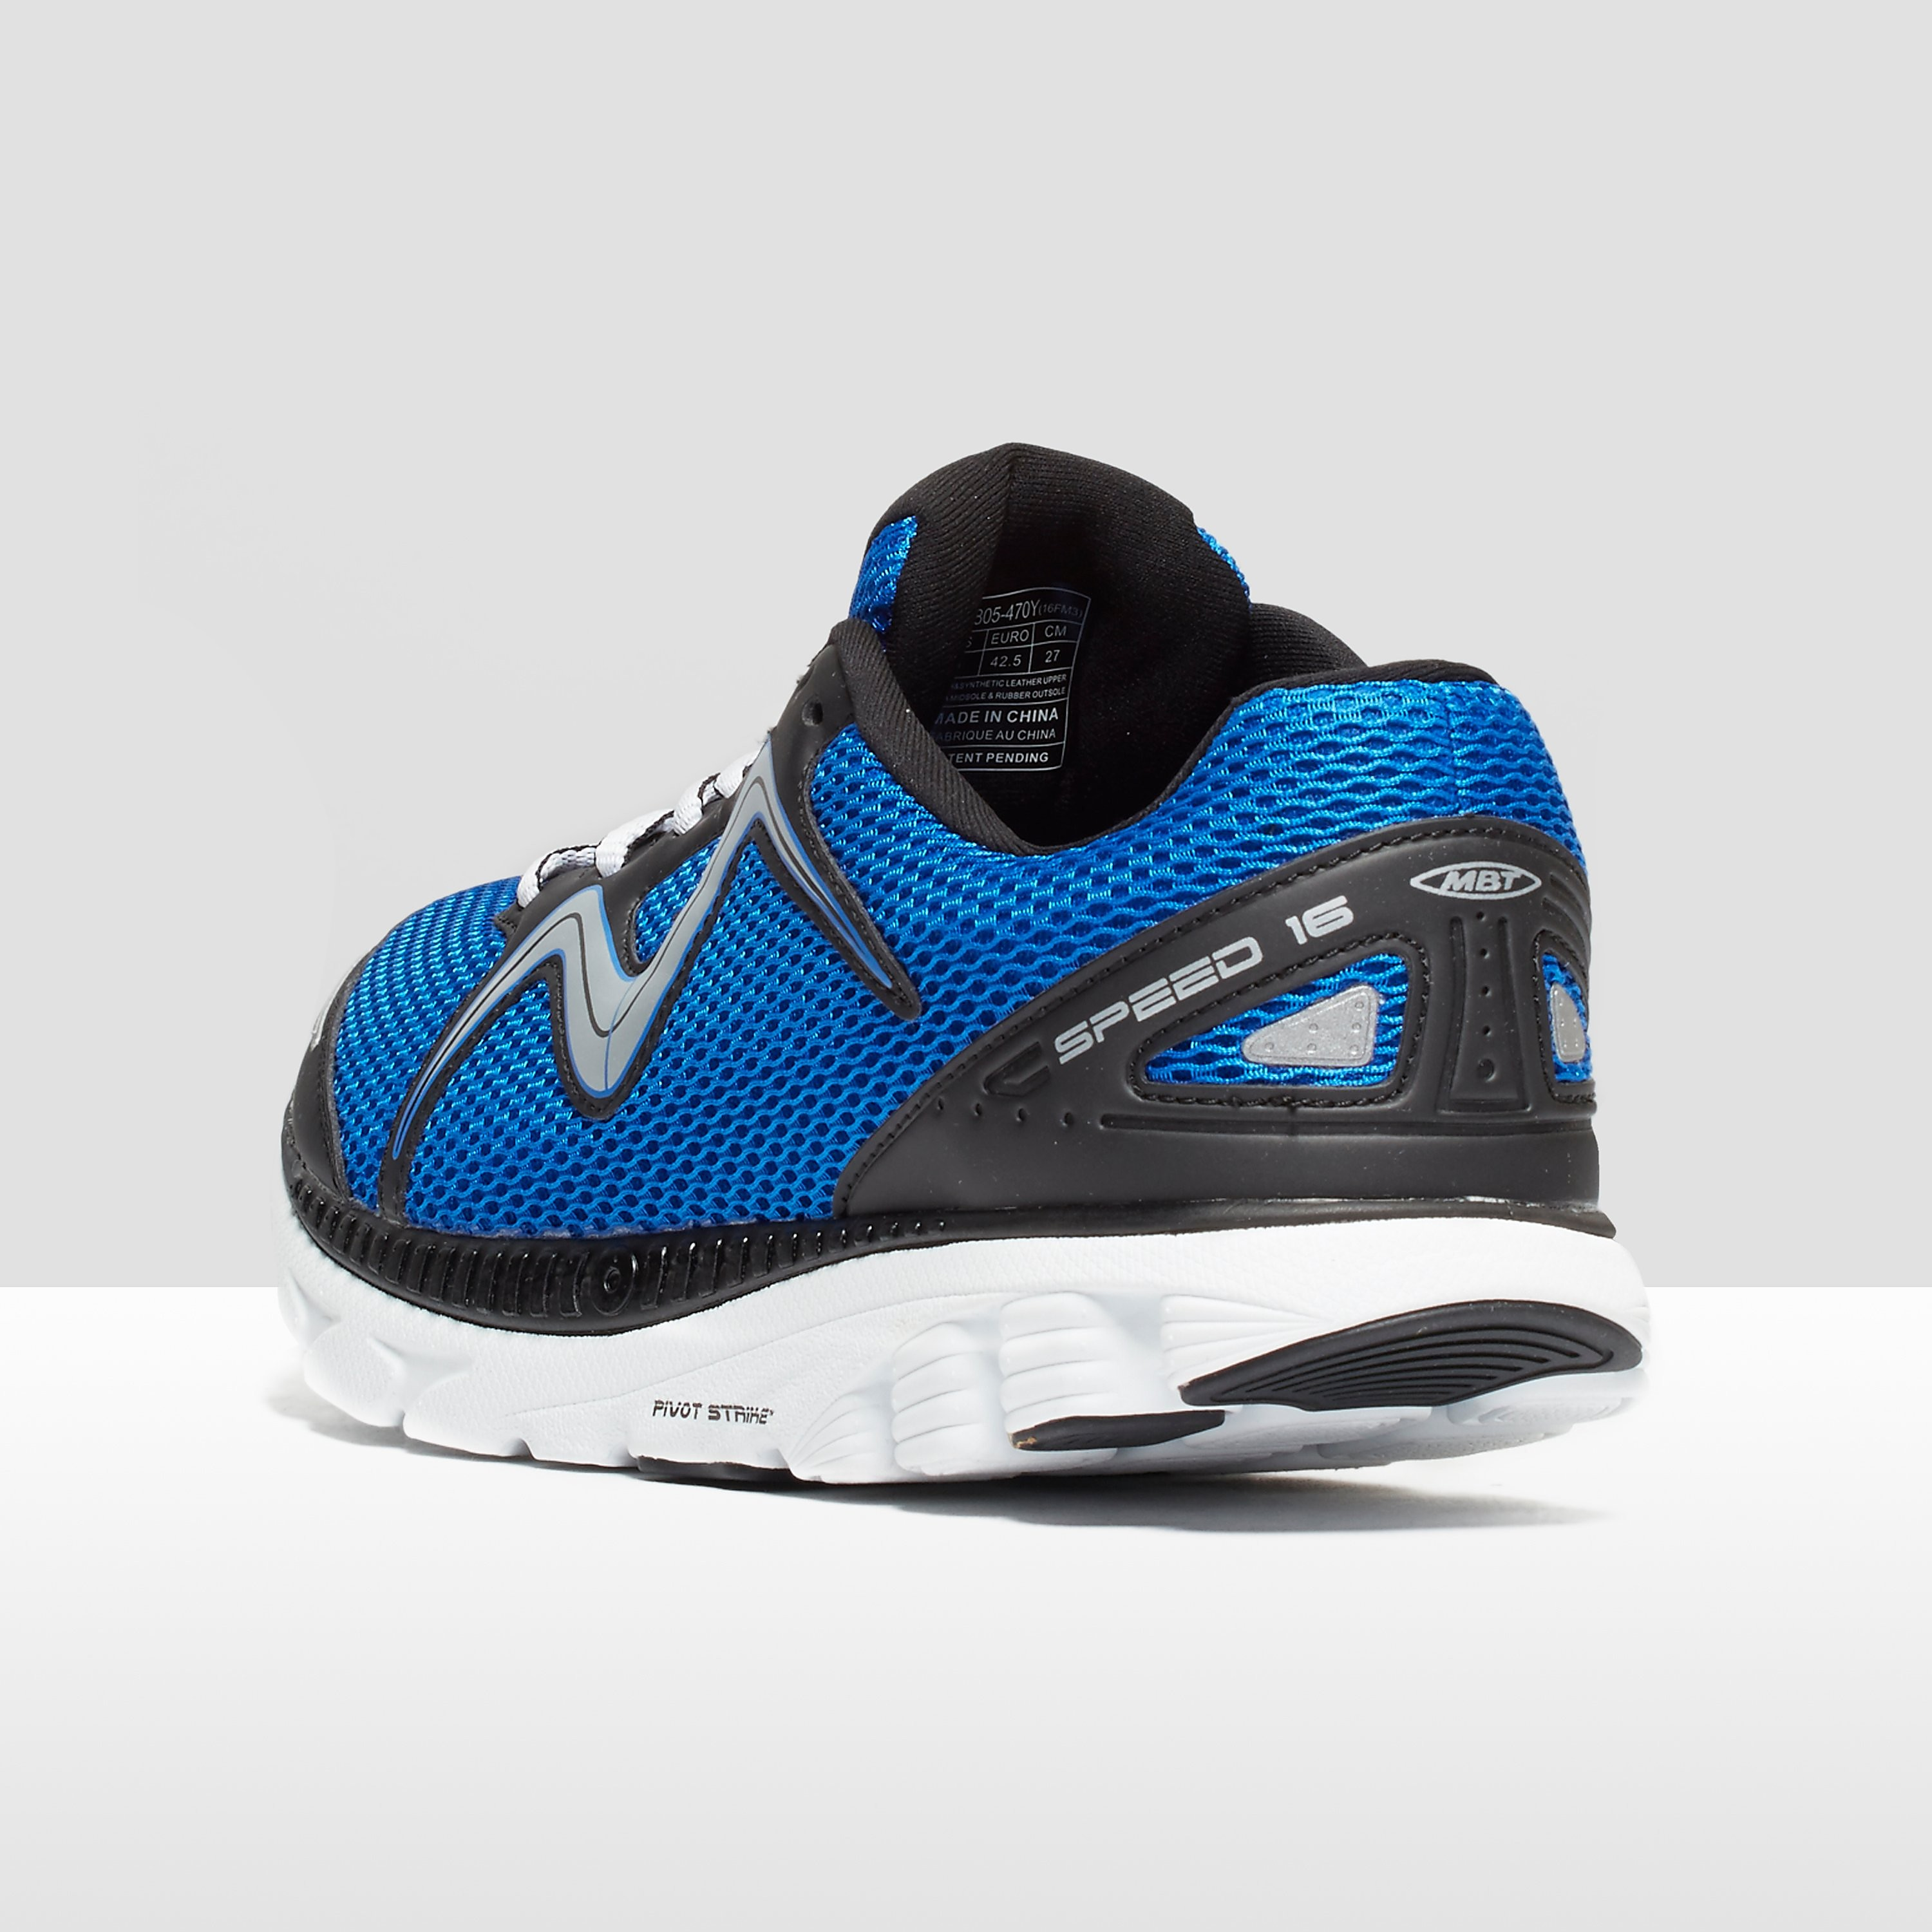 Mbt SPEED 16 BLUE AND